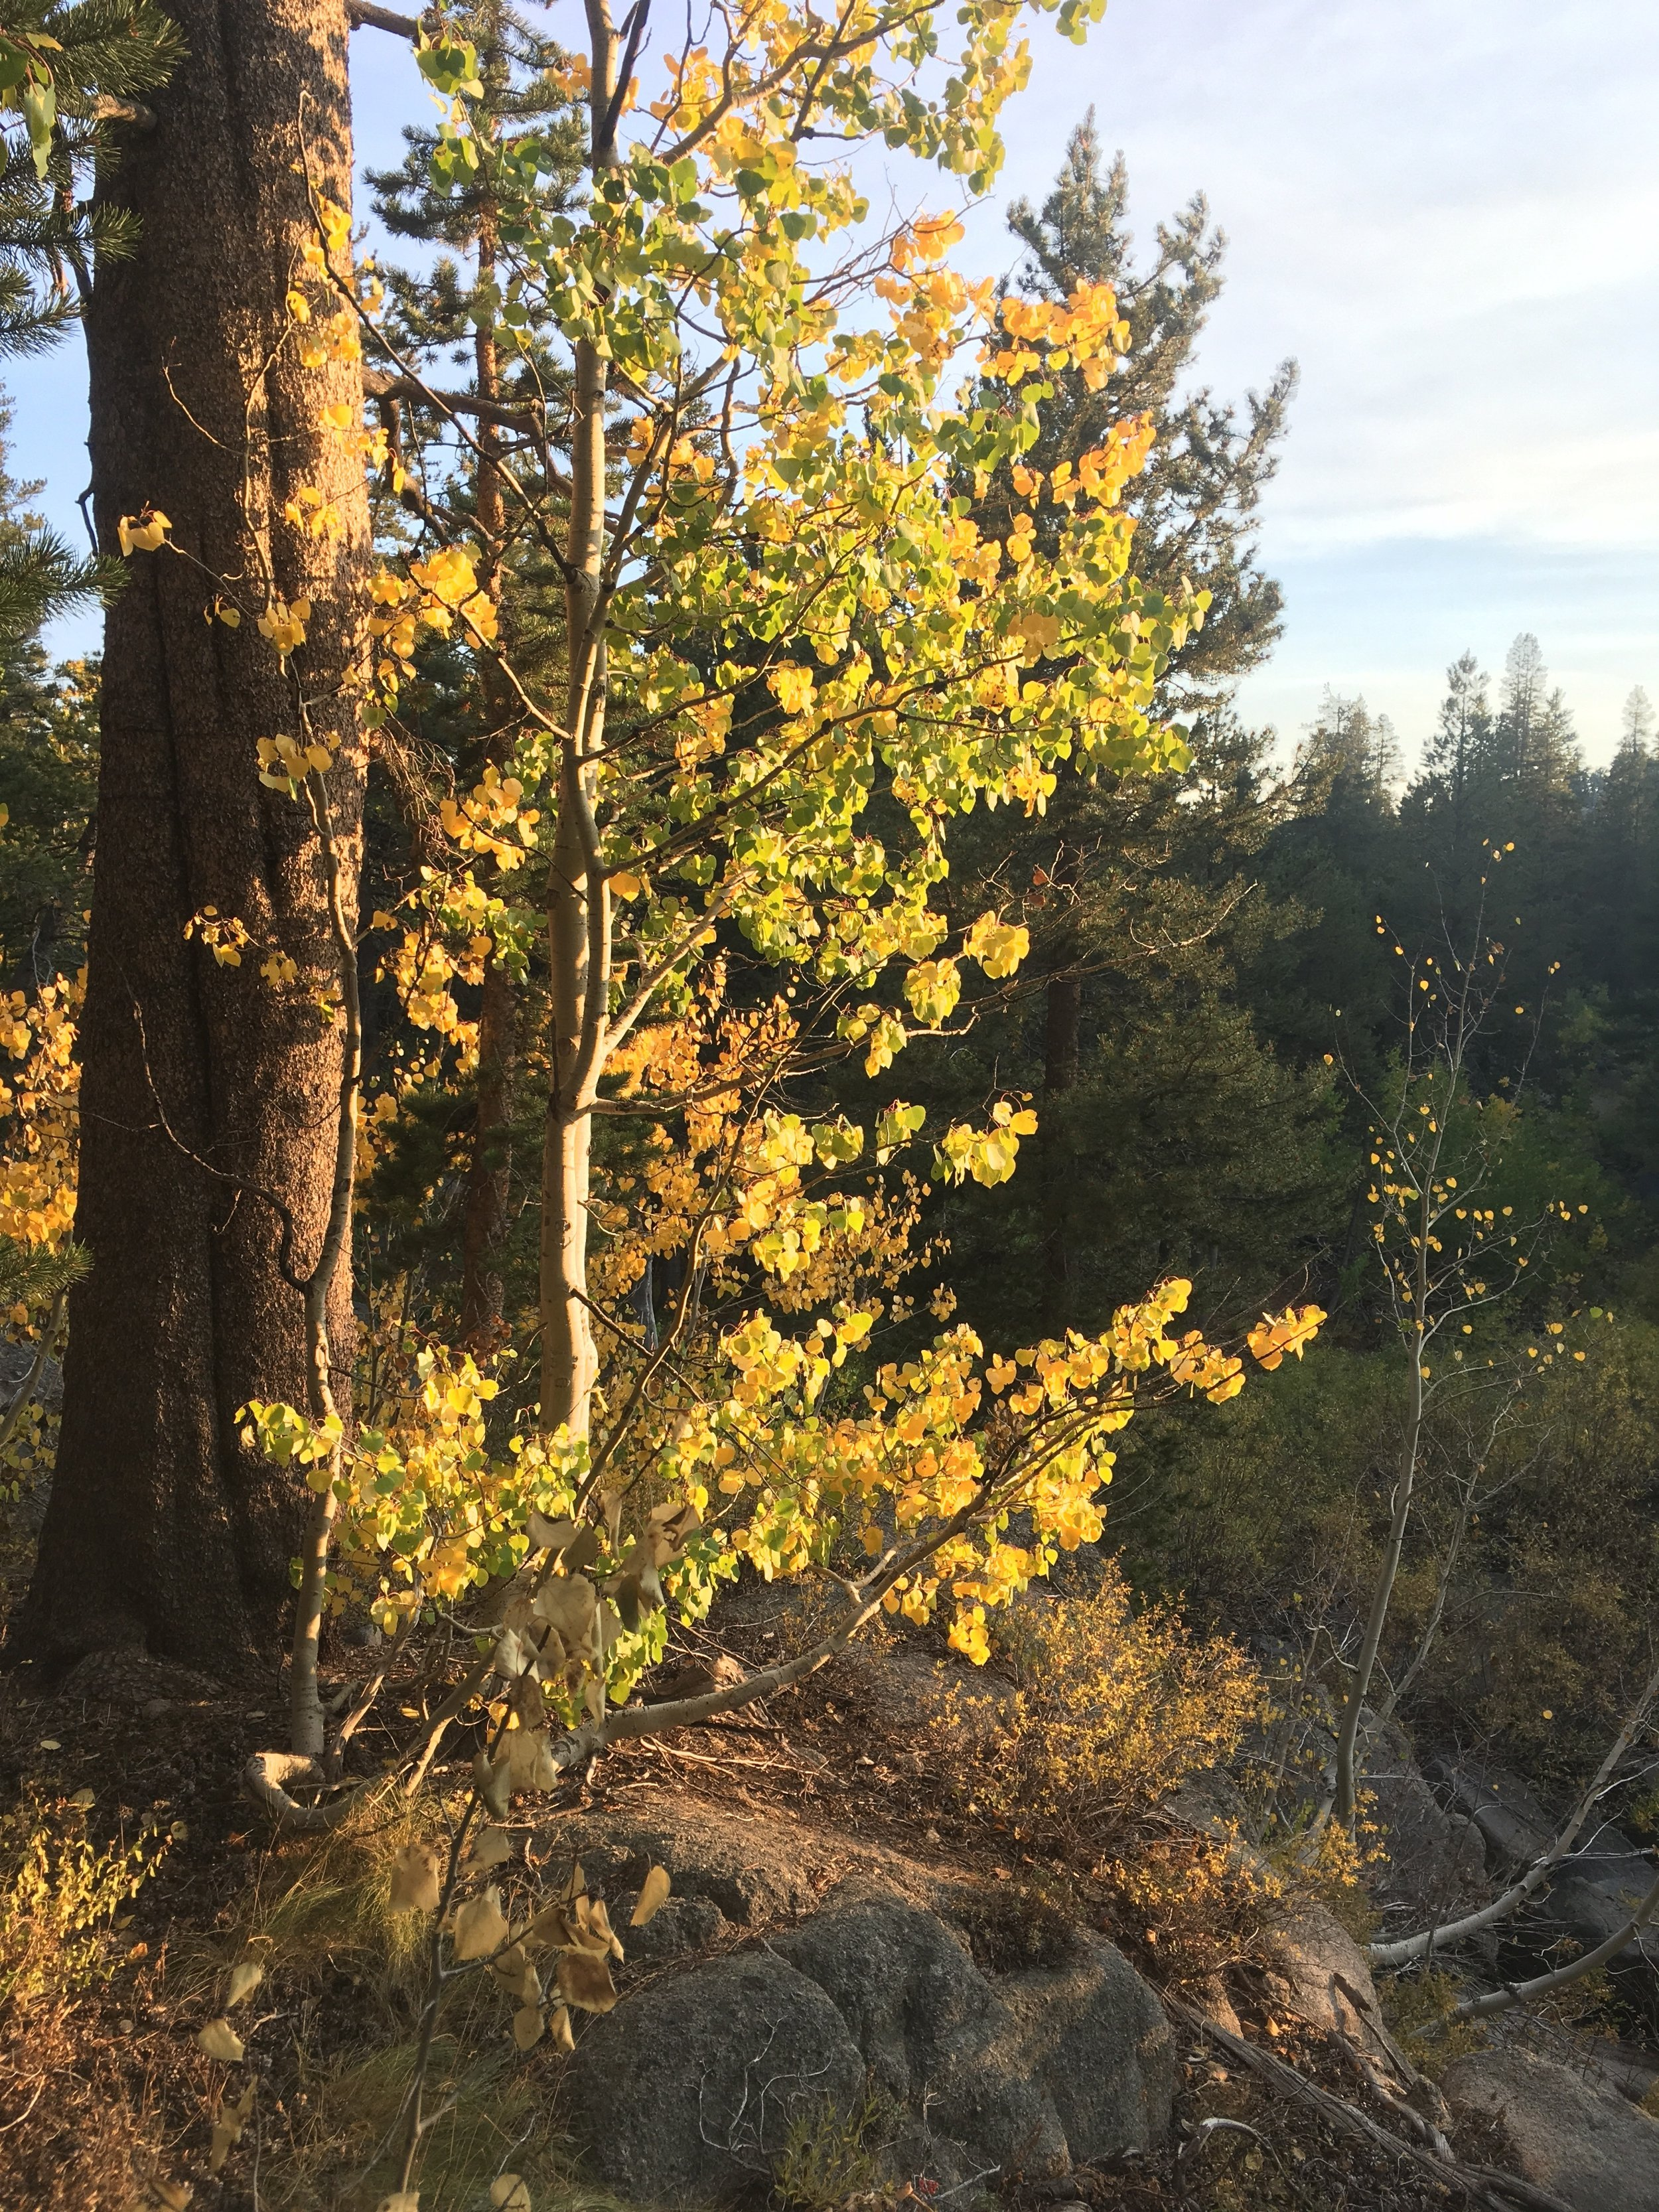 Golden hour light and the changing aspens.